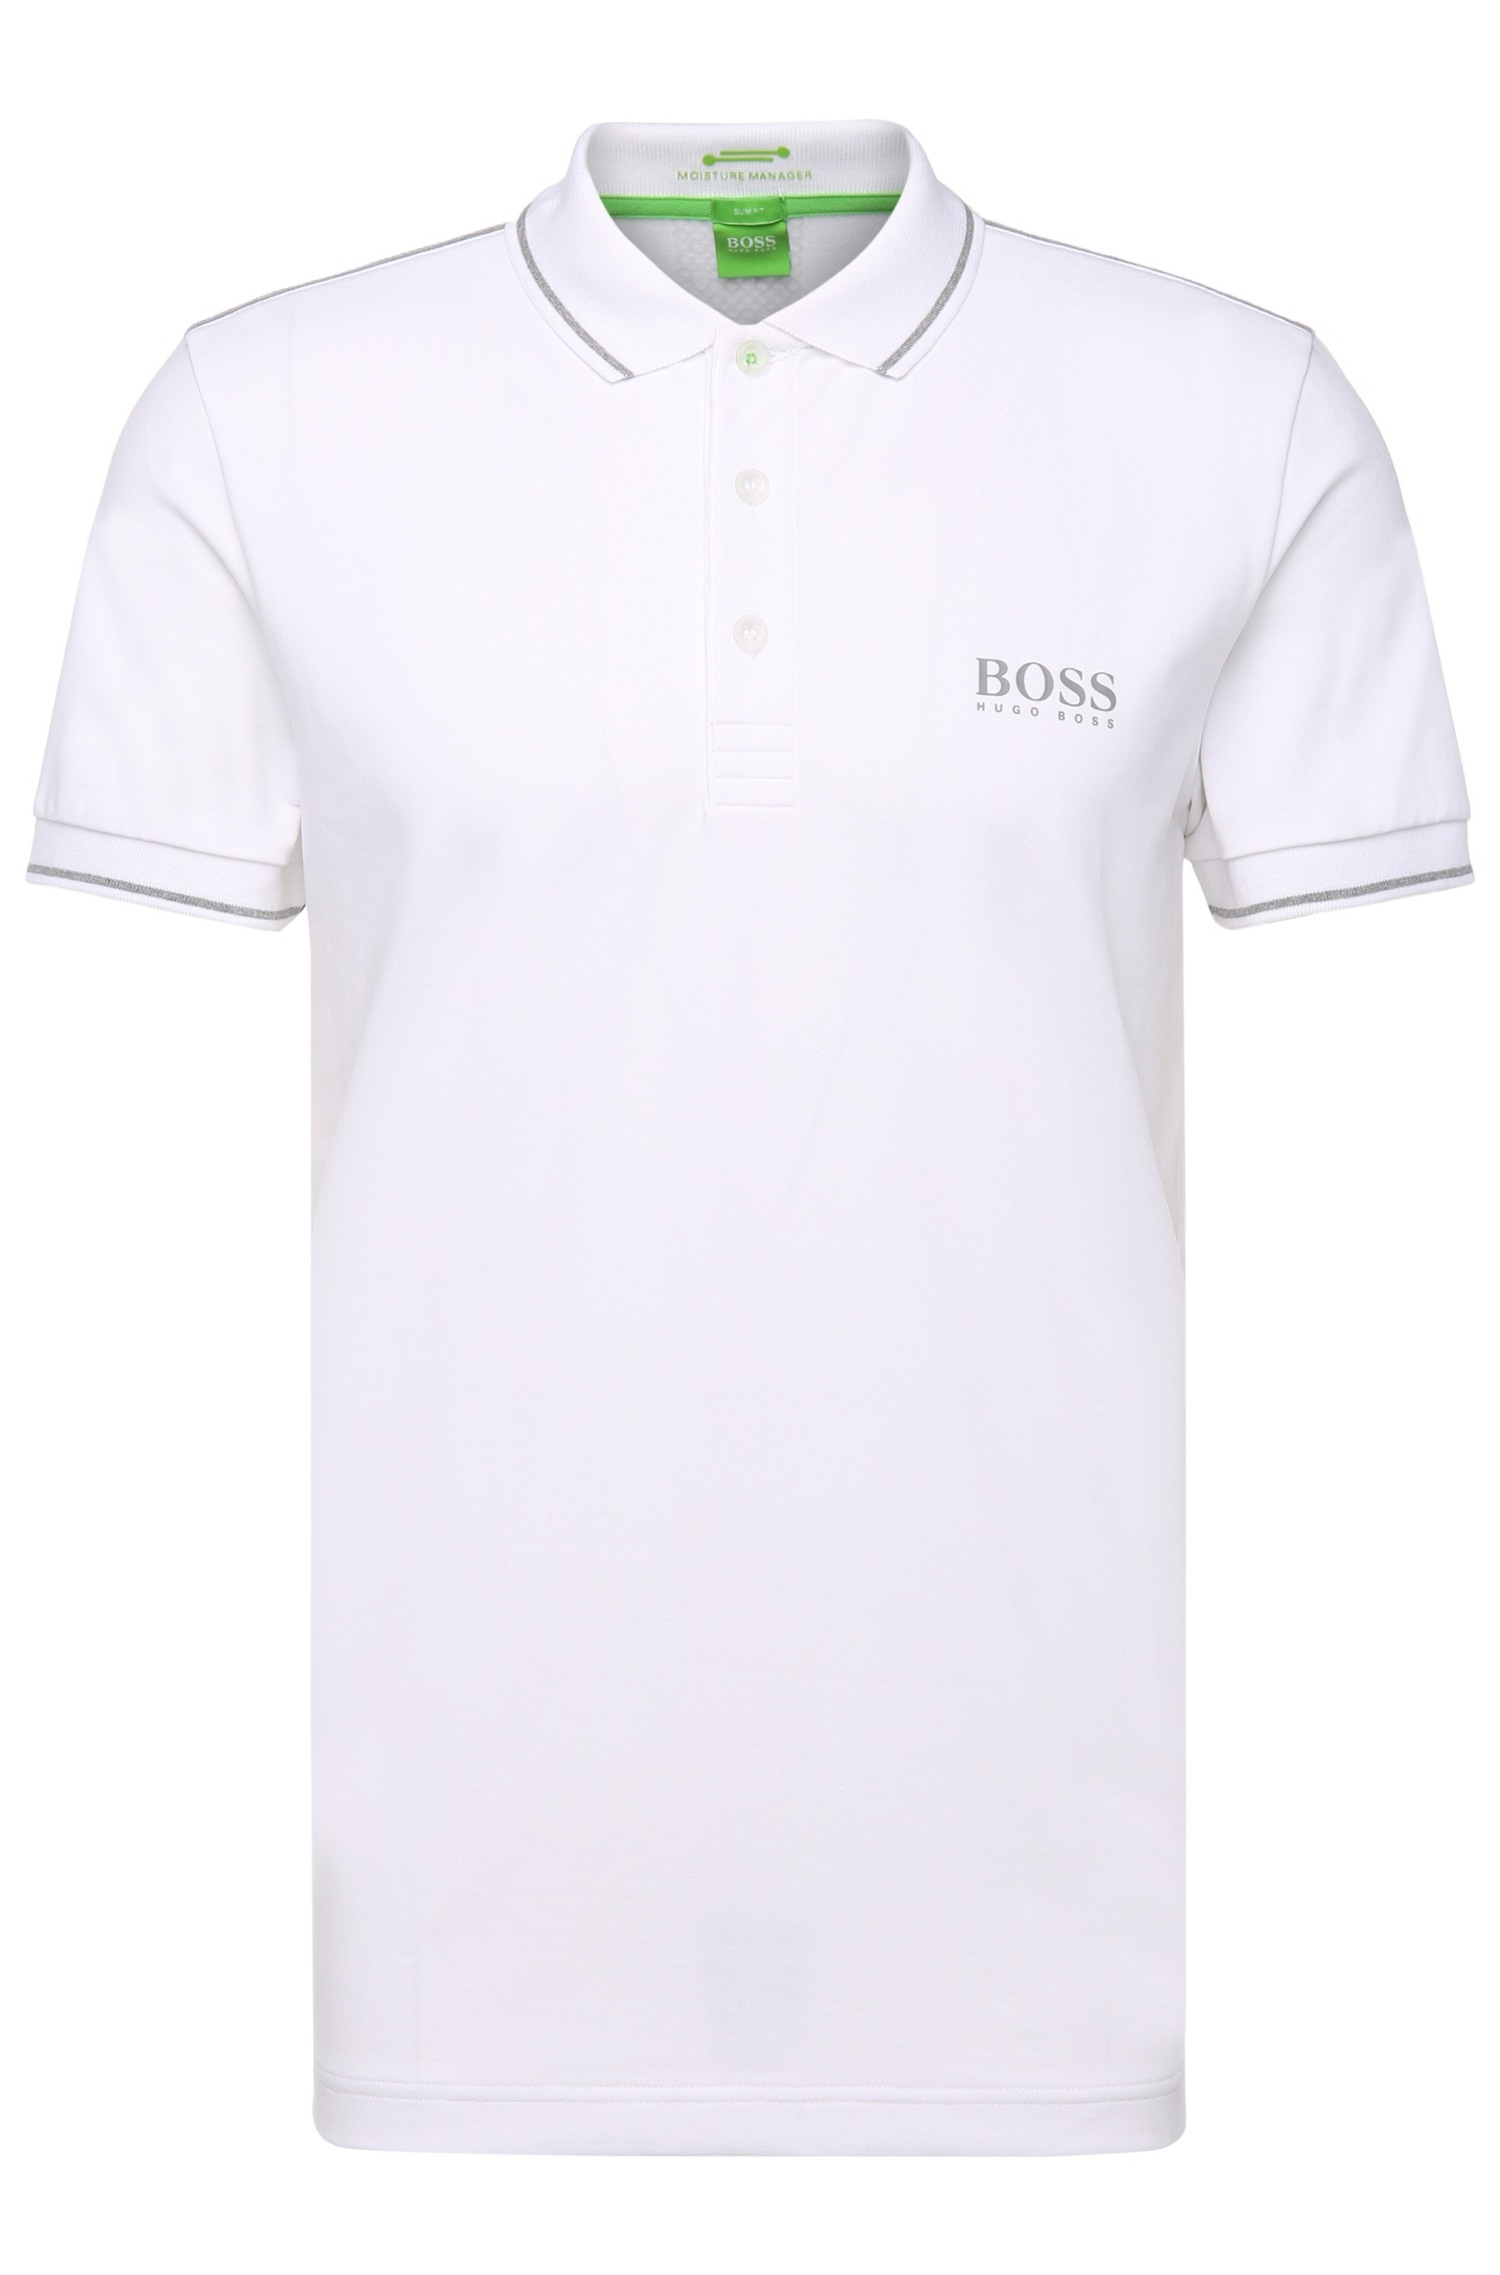 063a21160 BOSS Green 'paule Pro' | Slim Fit, Moisture Manager Cotton Polo ...